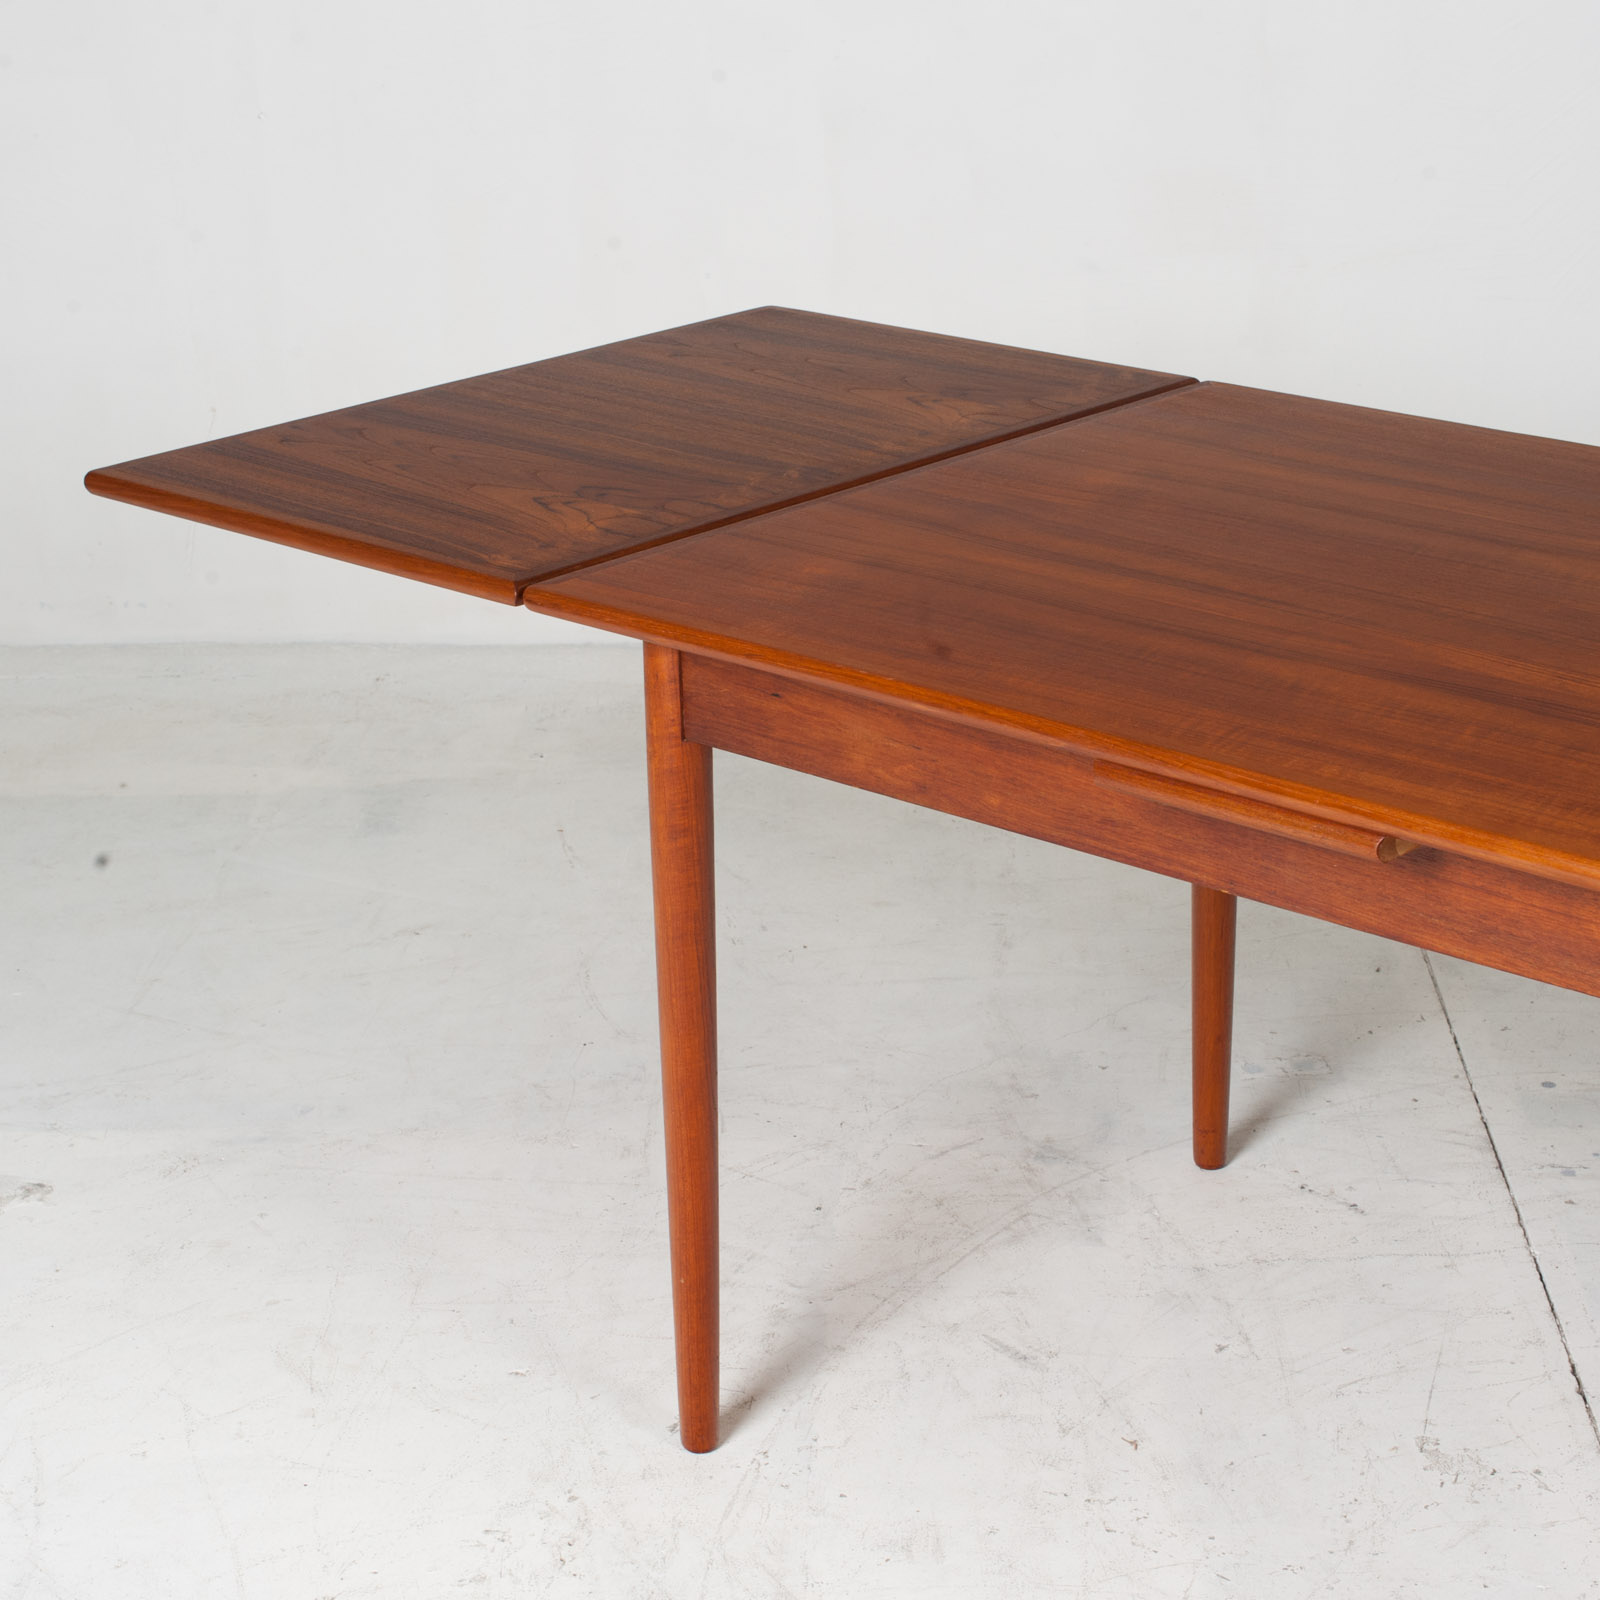 Rectangular Dining Table In Teak With Concealed Extentions 1960s Denmark12